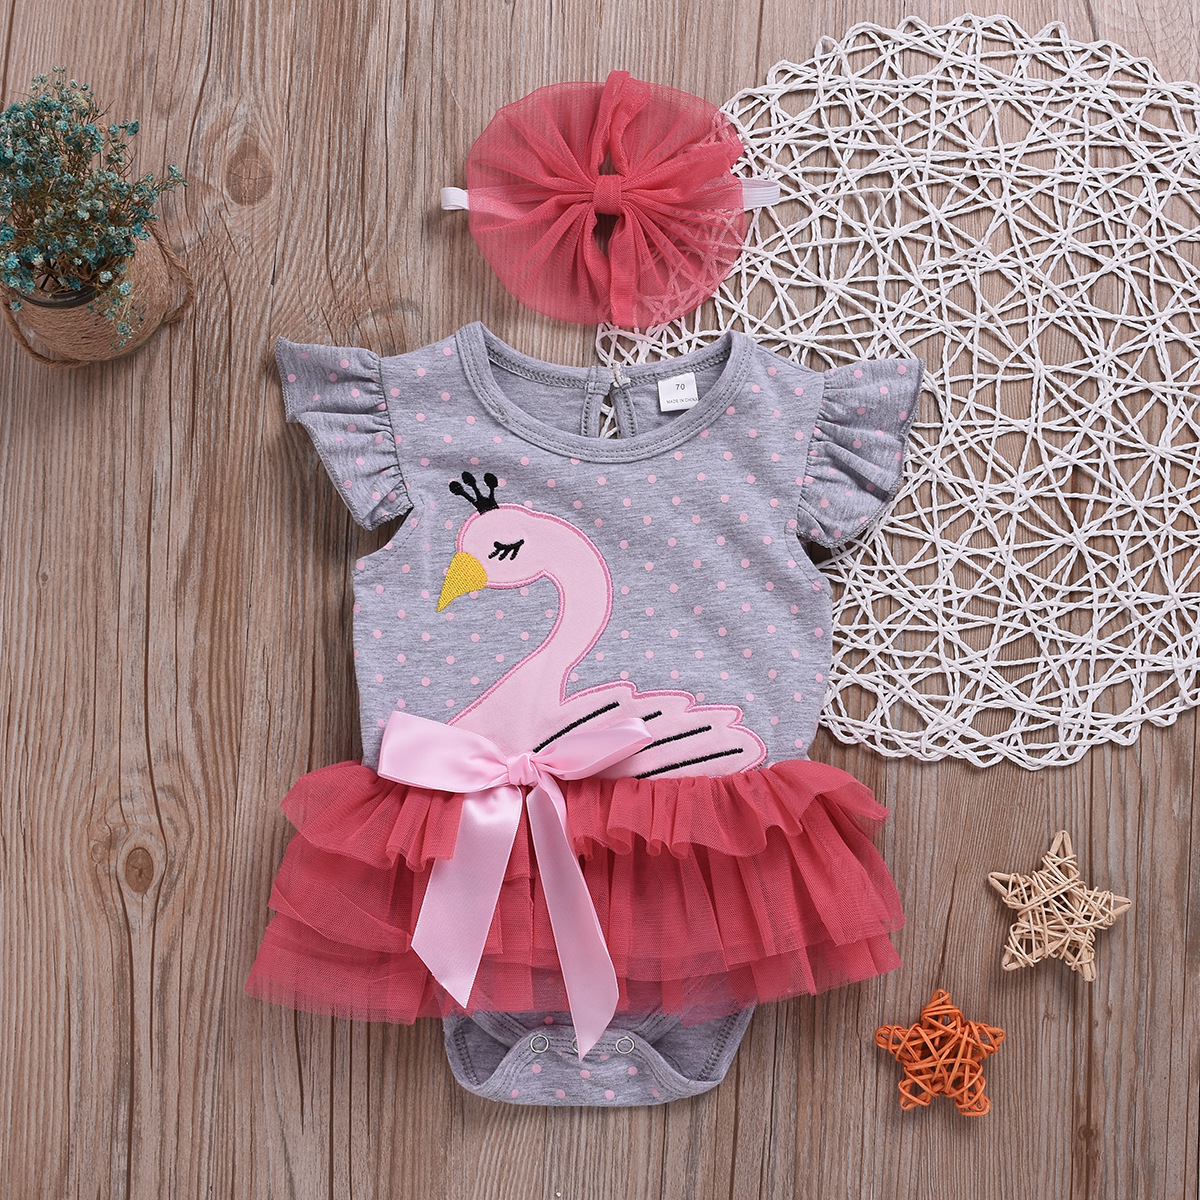 a9b34bed3 2019 Newborn Baby Girls Bow Swan Romper Jumpsuit With Headband ...